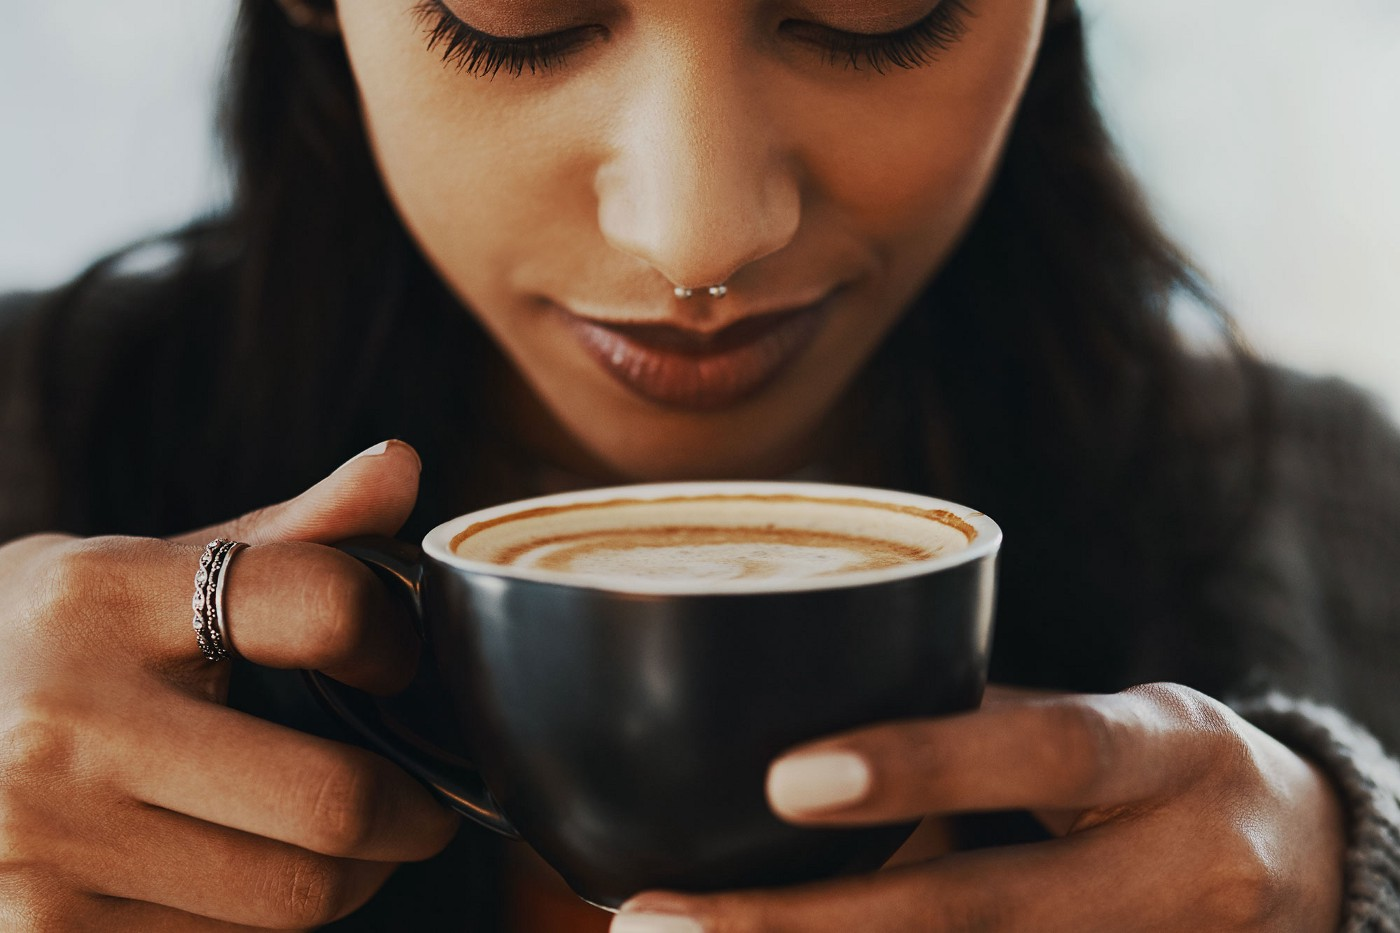 Benefits of Coffee: COVID-19 infection can be reduced by drinking coffee